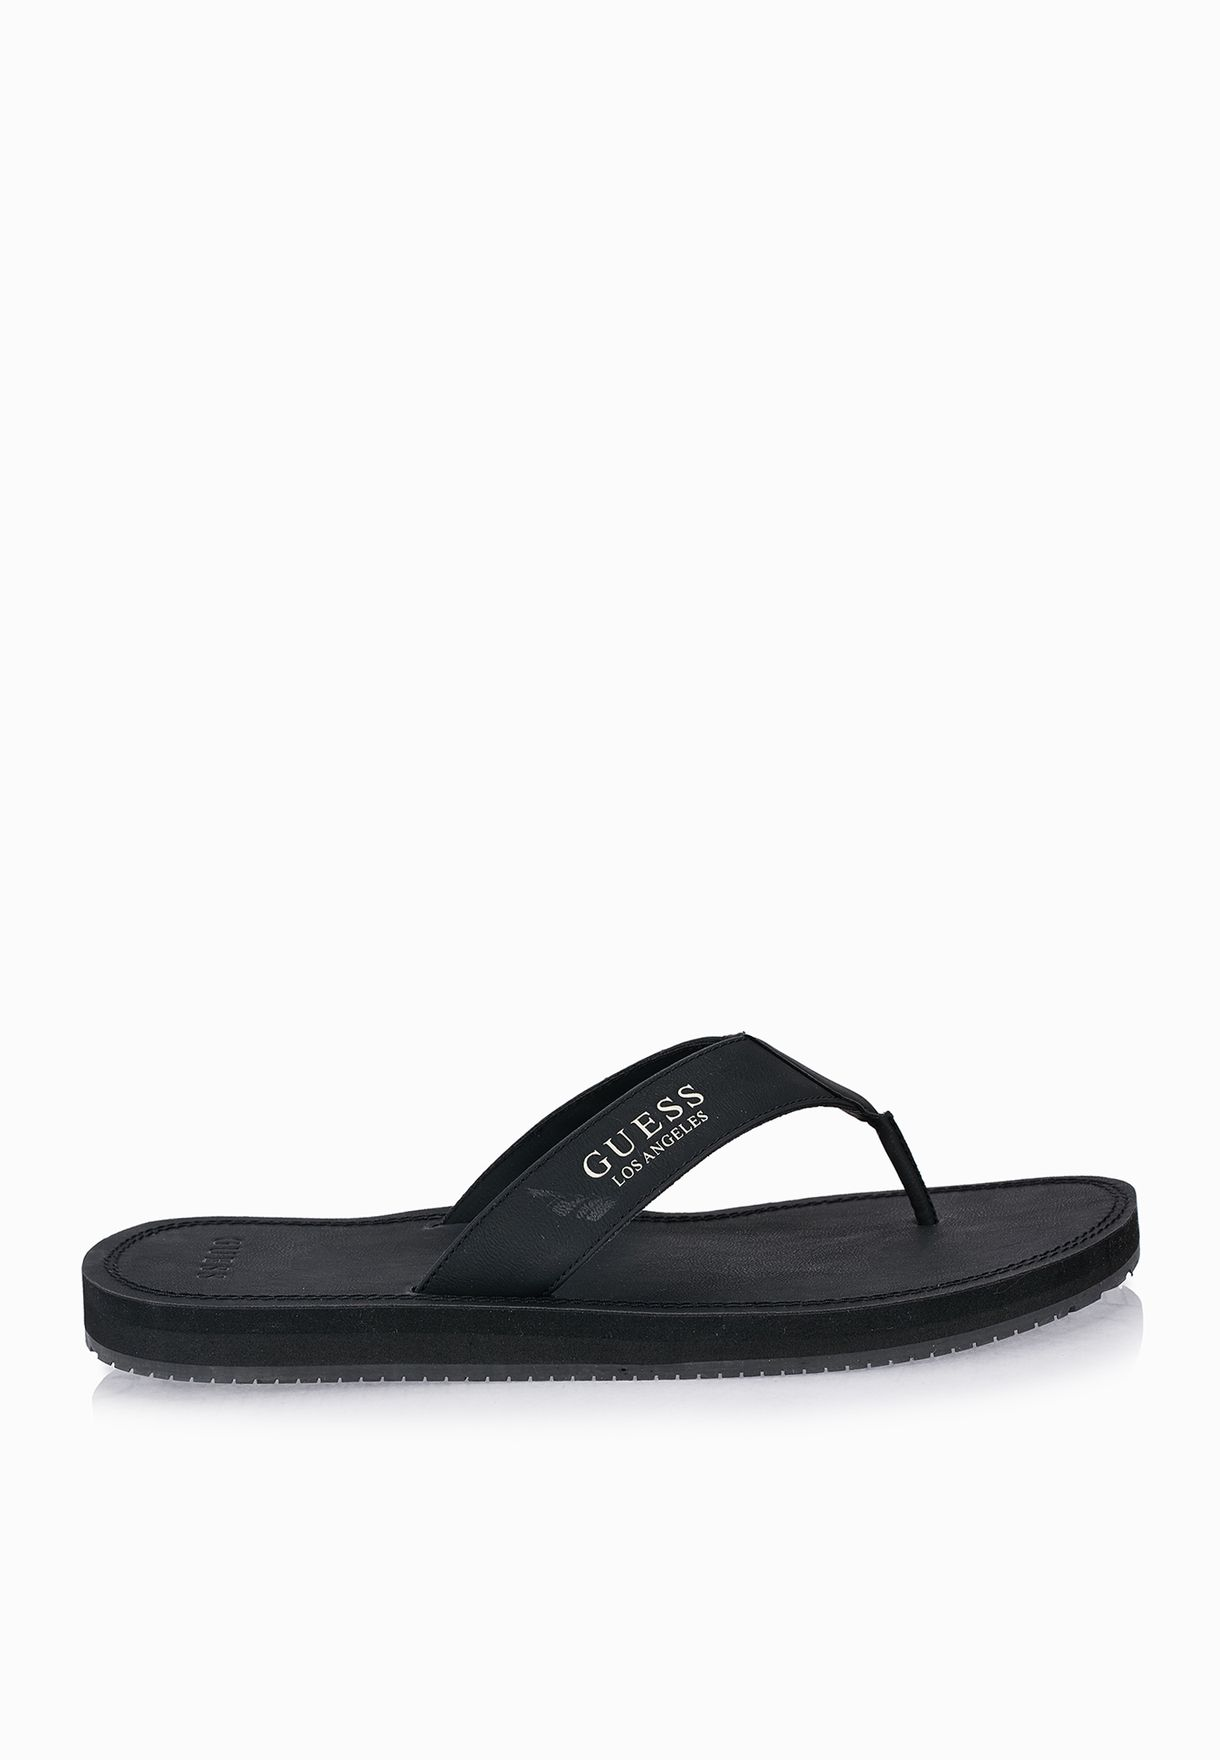 71052ae6275 Shop Guess black Jeddo Flip Flops GMJEDDO for Men in UAE - GU094SH07FCA